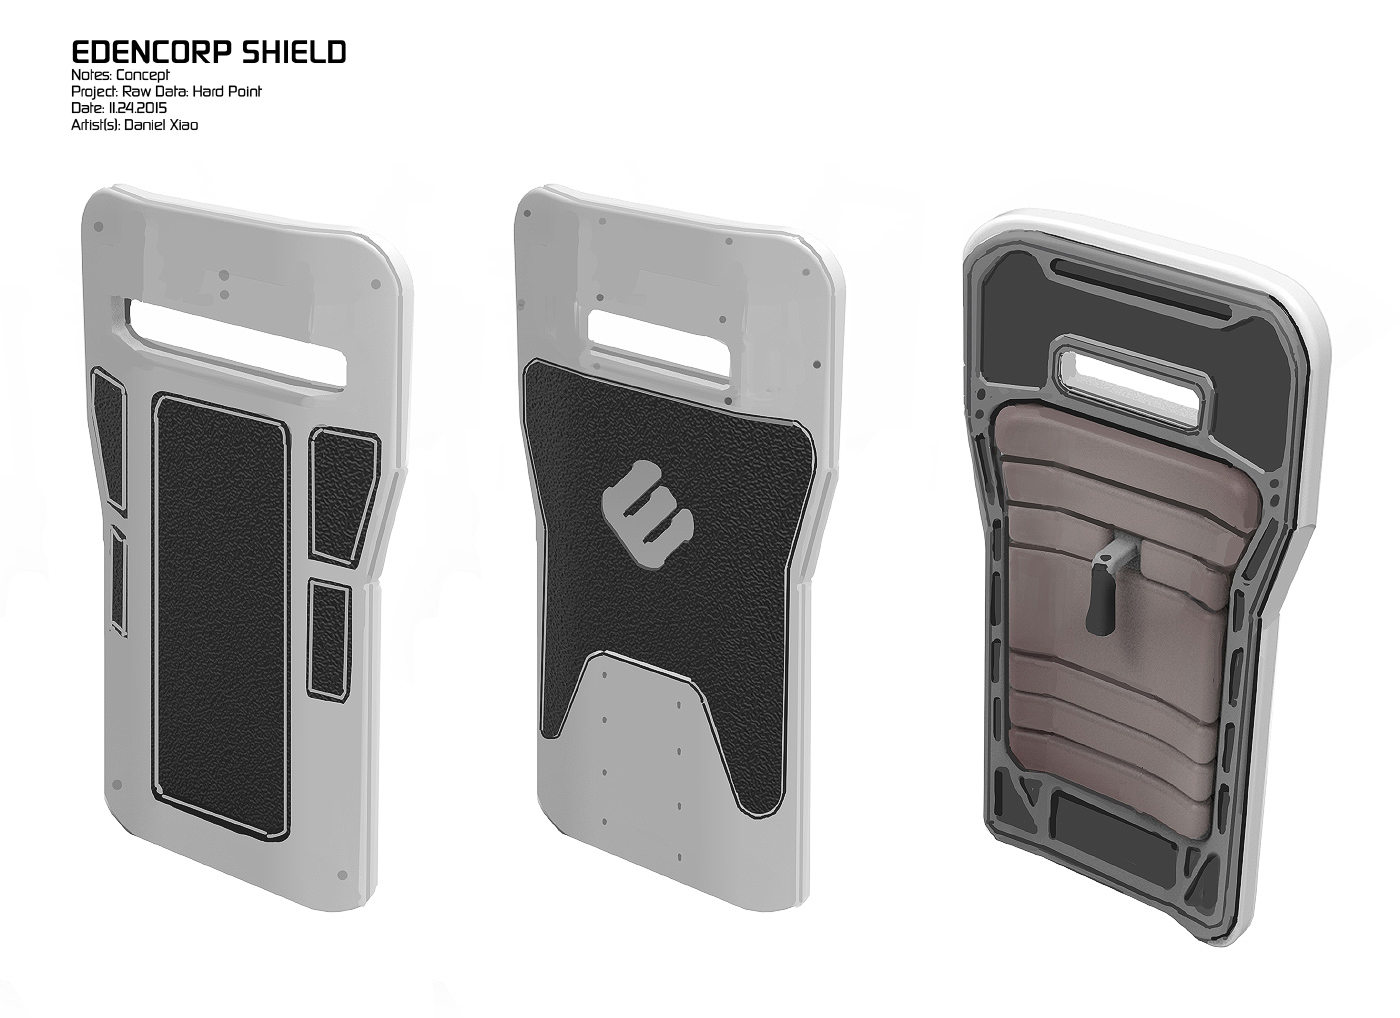 Concepts for a destructible riot shield that never made it into the game.